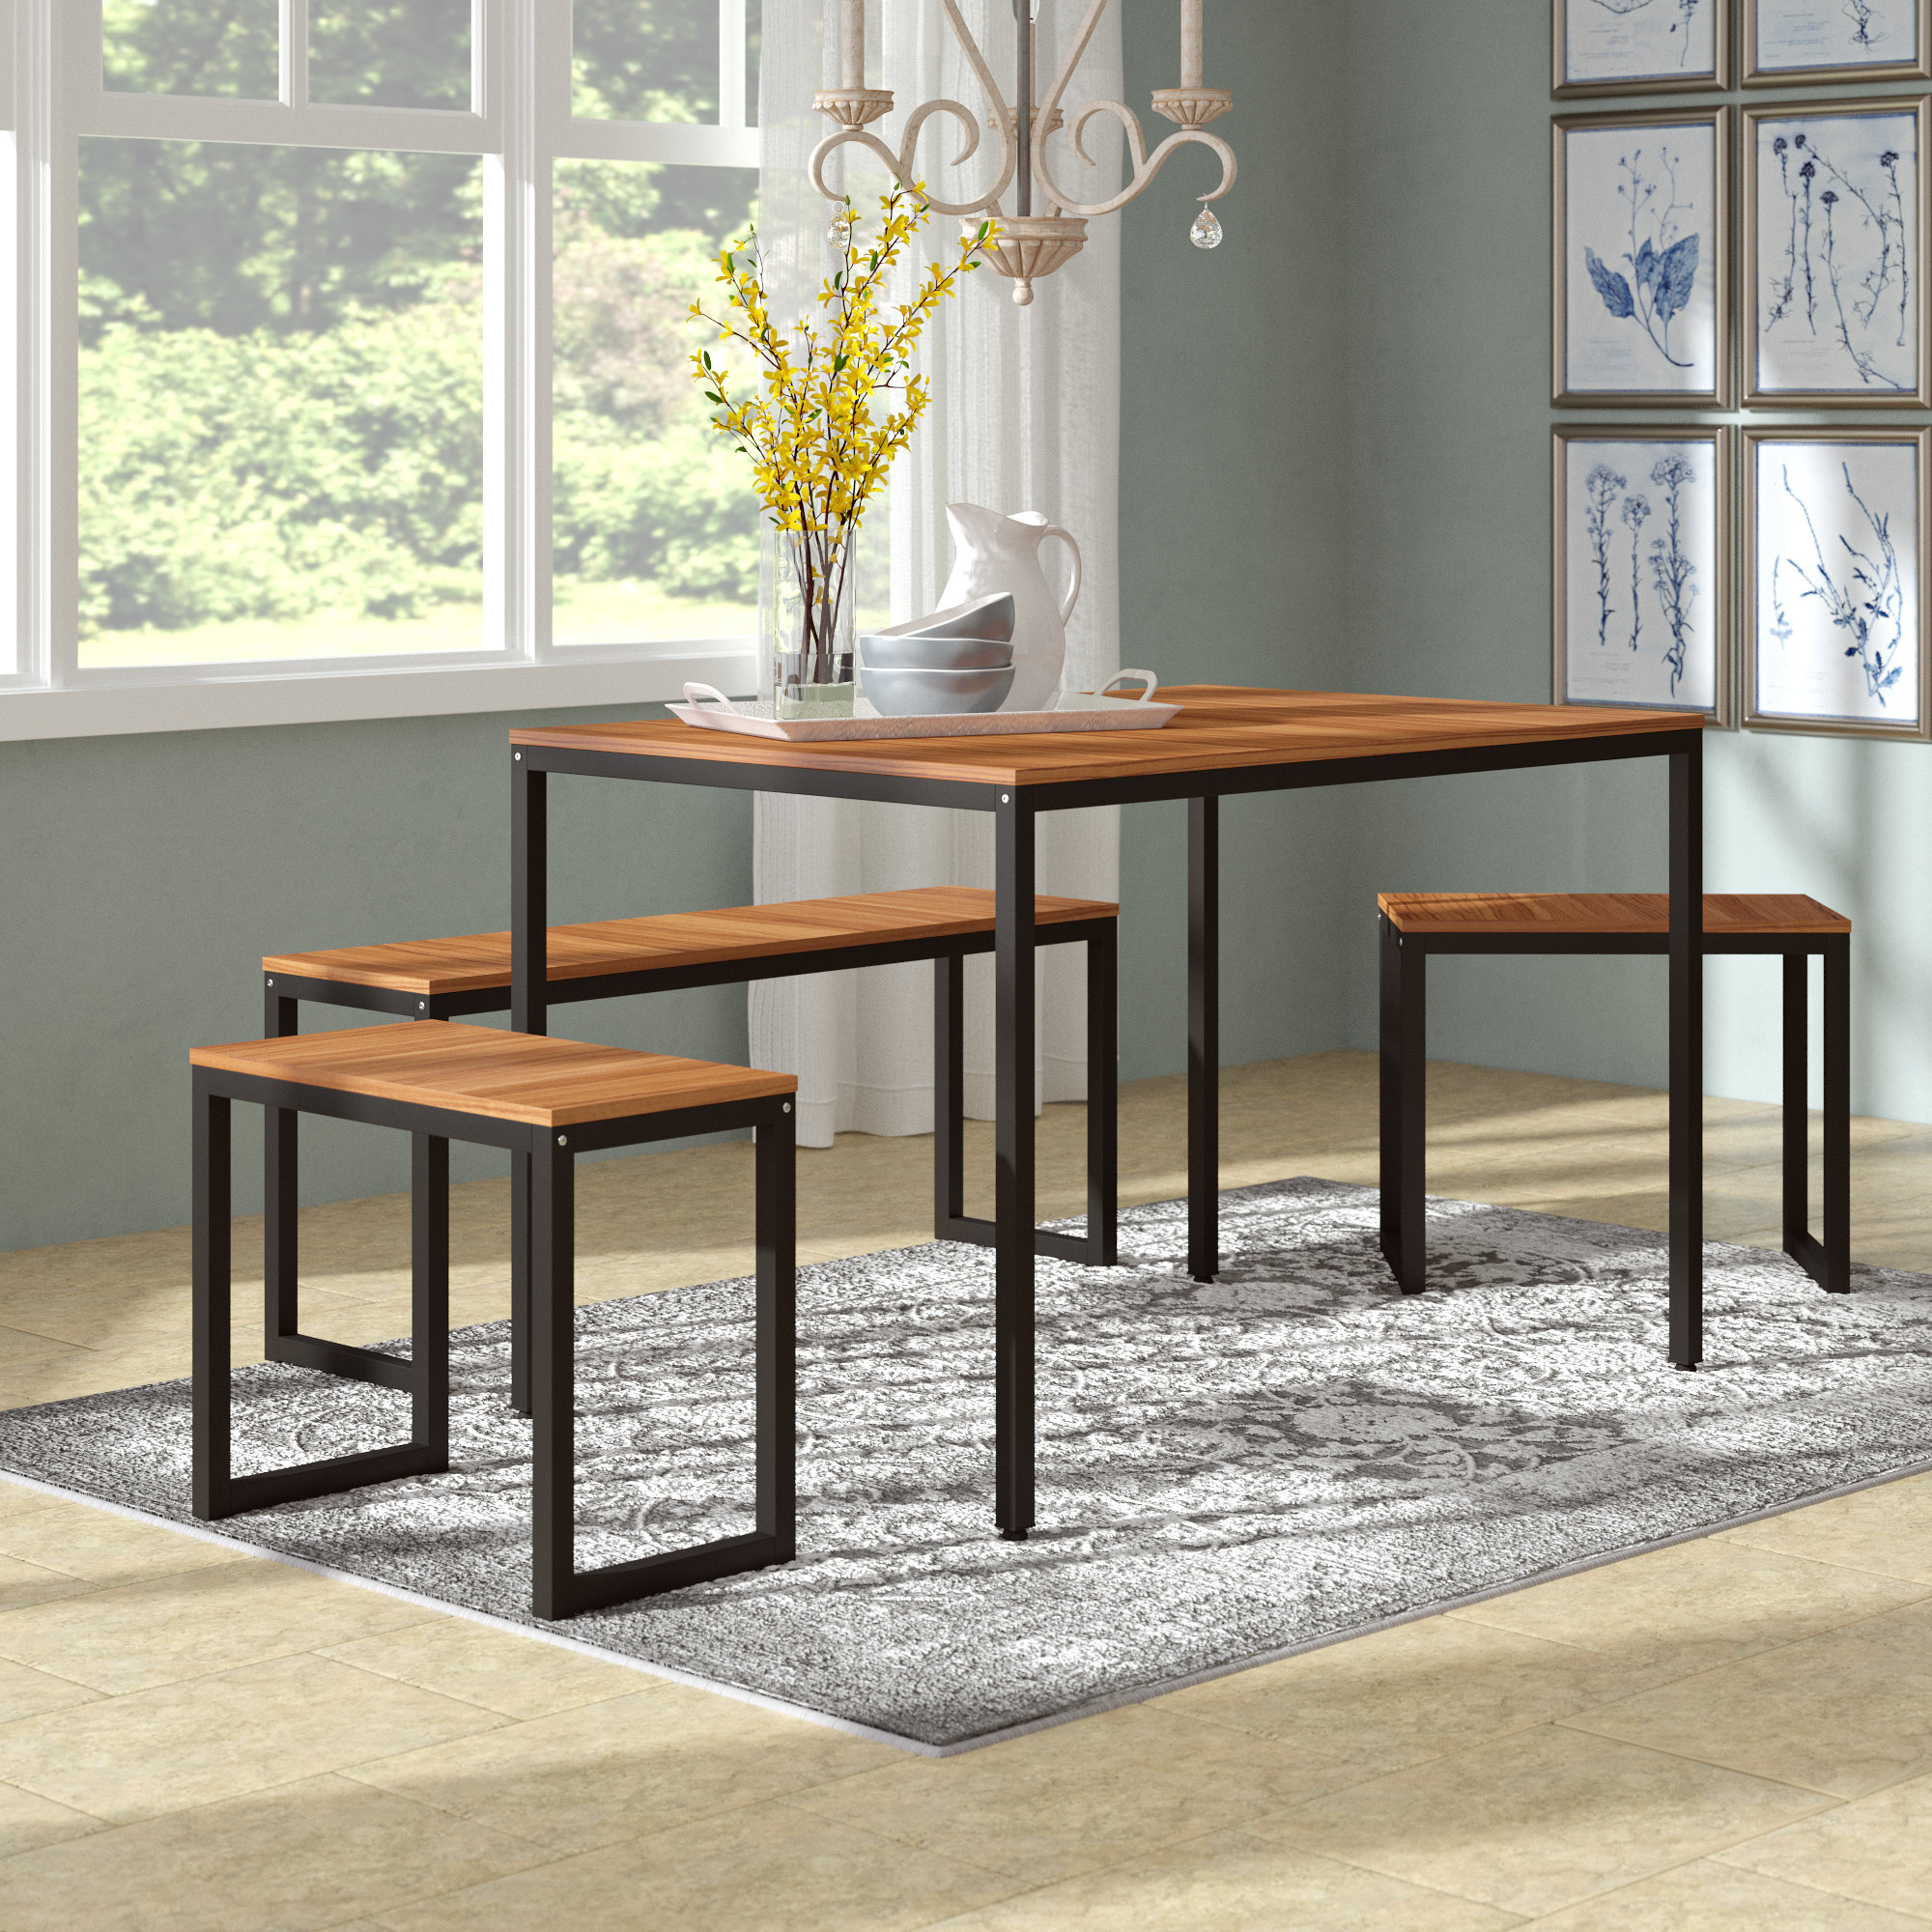 John 4 Piece Dining Set With Famous Kerley 4 Piece Dining Sets (View 4 of 20)